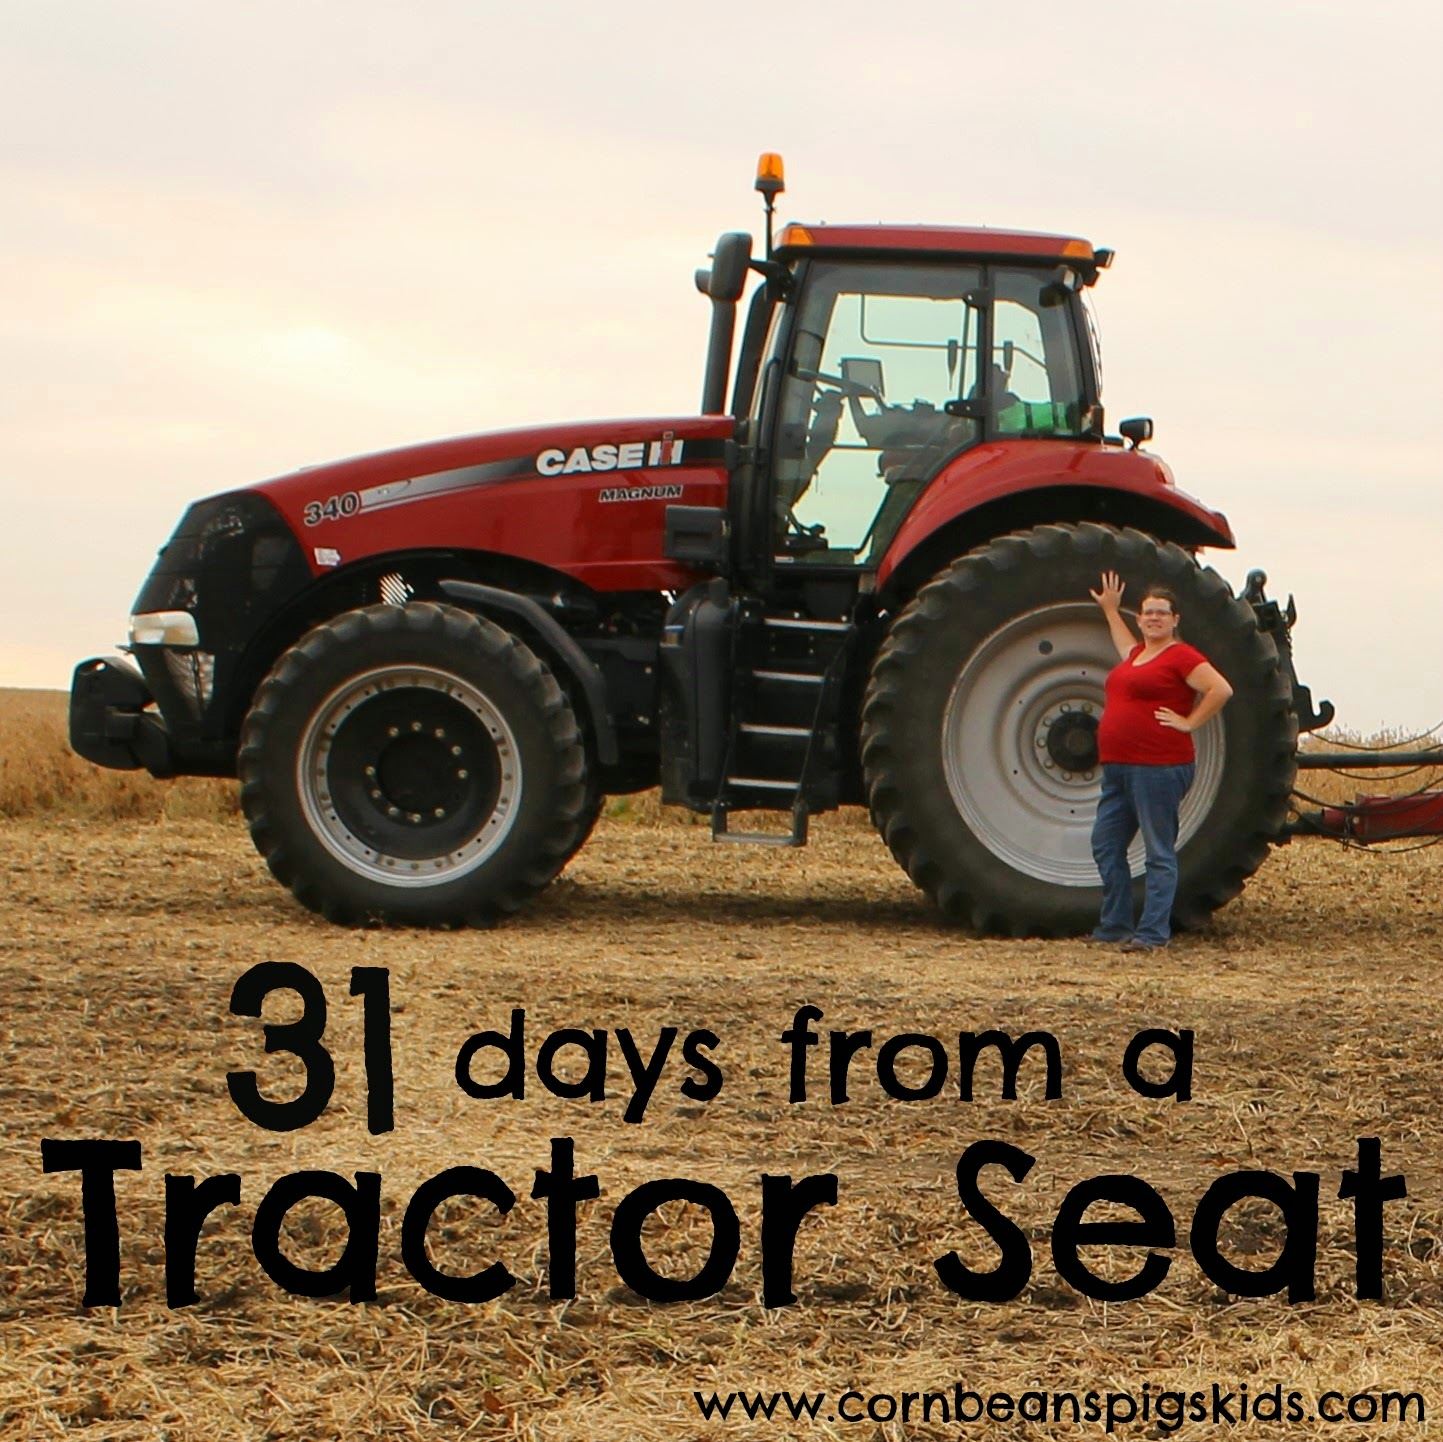 31 days from a Tractor Seat - Tractor Seat Update